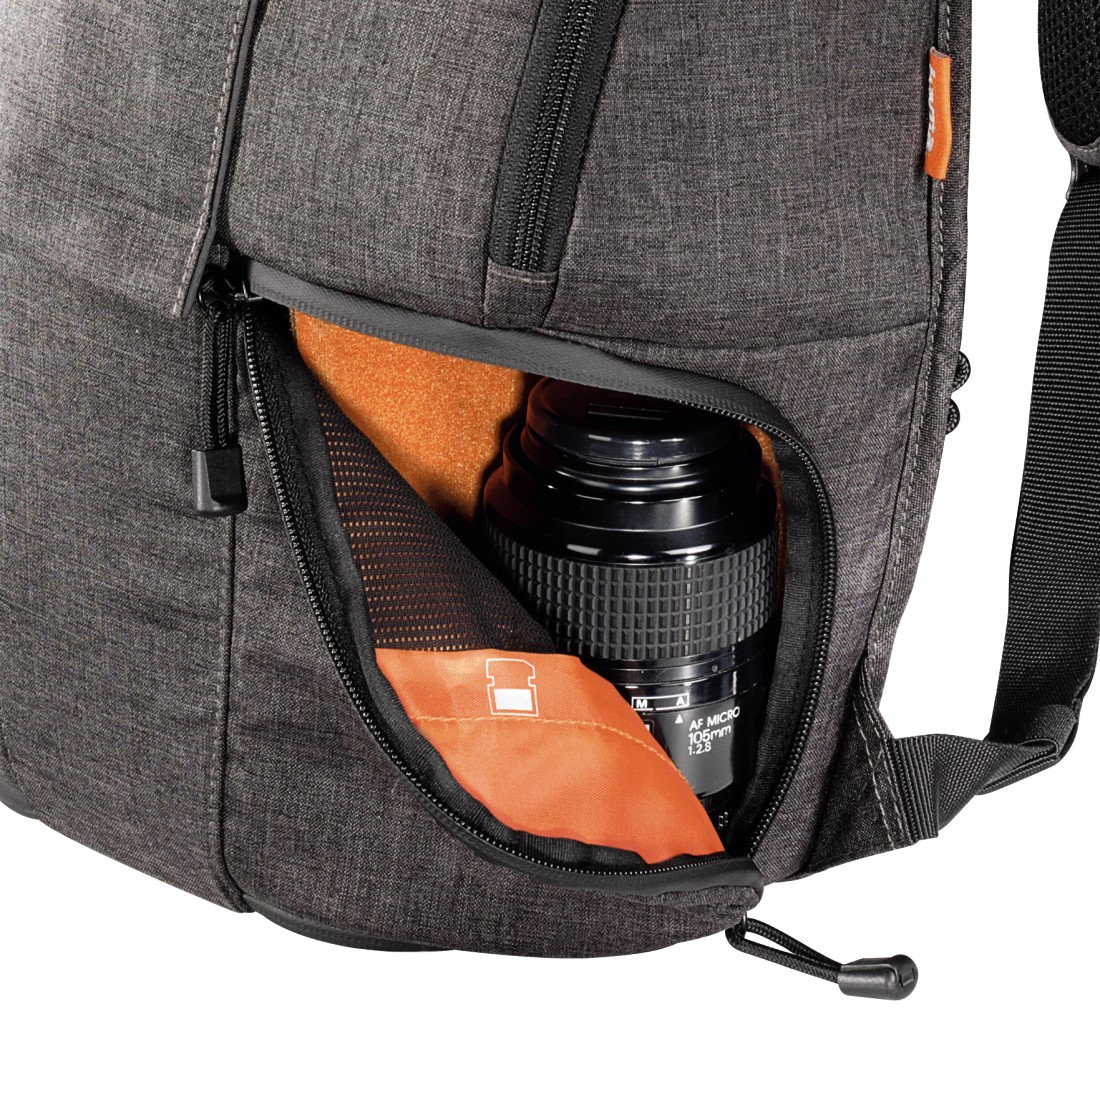 dex5 High-Res Detail 5 - Hama, Lismore Camera Backpack, 170, black